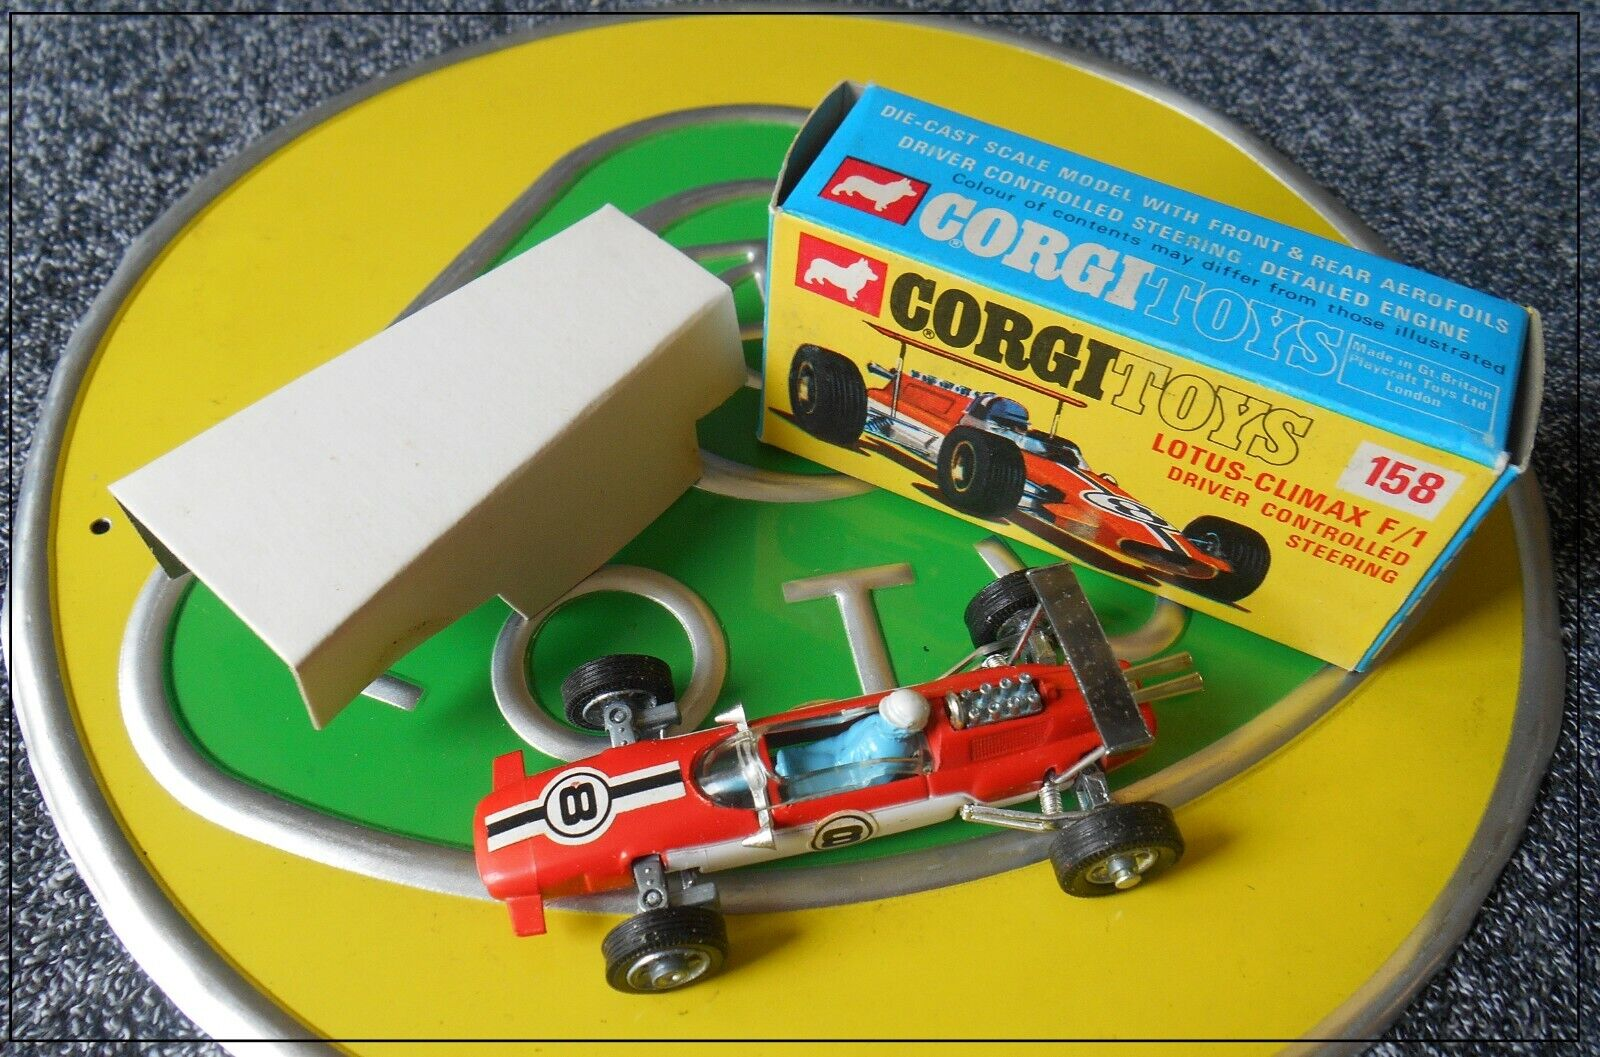 CORGI 158 LOTUS CLIMAX F1 49 49B Comme neuf boxed exceptionnel Hill Rindt SIFFERT